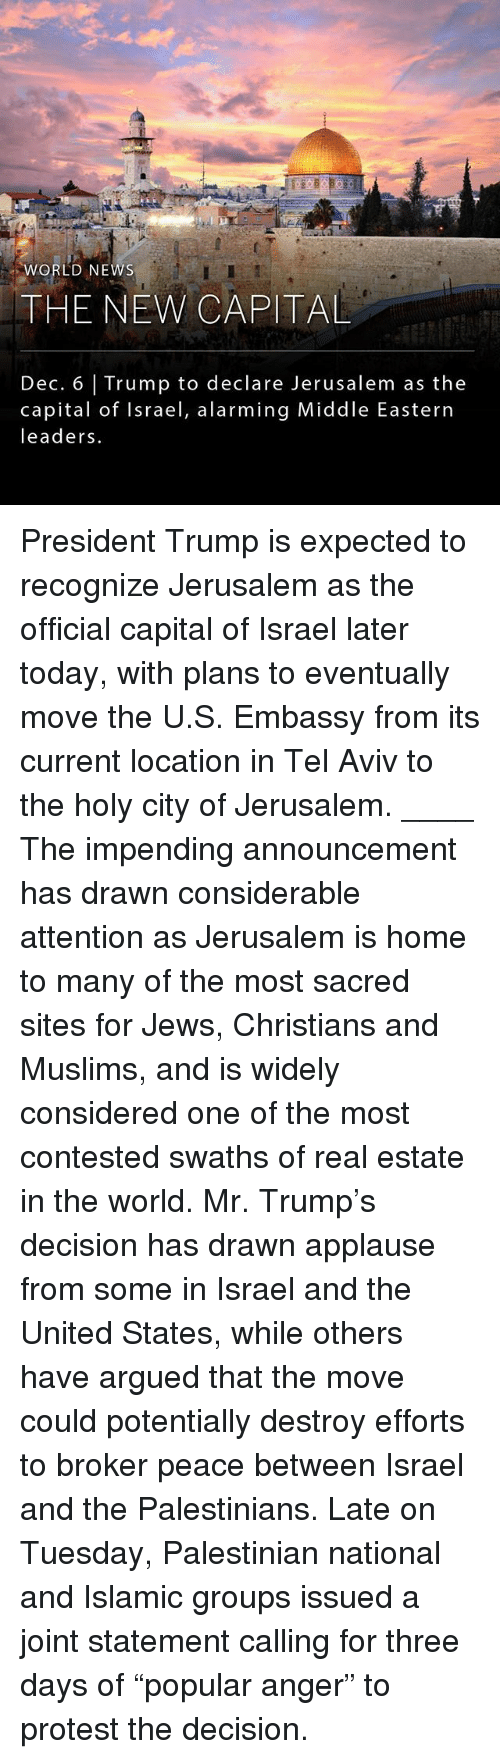 "Mr Trump: ORLD NEWS  THE NEW CAPITAL  Dec. 6 Trump to declare Jerusalem as the  capital of Israel, alarming Middle Eastern  leaders. President Trump is expected to recognize Jerusalem as the official capital of Israel later today, with plans to eventually move the U.S. Embassy from its current location in Tel Aviv to the holy city of Jerusalem. ____ The impending announcement has drawn considerable attention as Jerusalem is home to many of the most sacred sites for Jews, Christians and Muslims, and is widely considered one of the most contested swaths of real estate in the world. Mr. Trump's decision has drawn applause from some in Israel and the United States, while others have argued that the move could potentially destroy efforts to broker peace between Israel and the Palestinians. Late on Tuesday, Palestinian national and Islamic groups issued a joint statement calling for three days of ""popular anger"" to protest the decision."